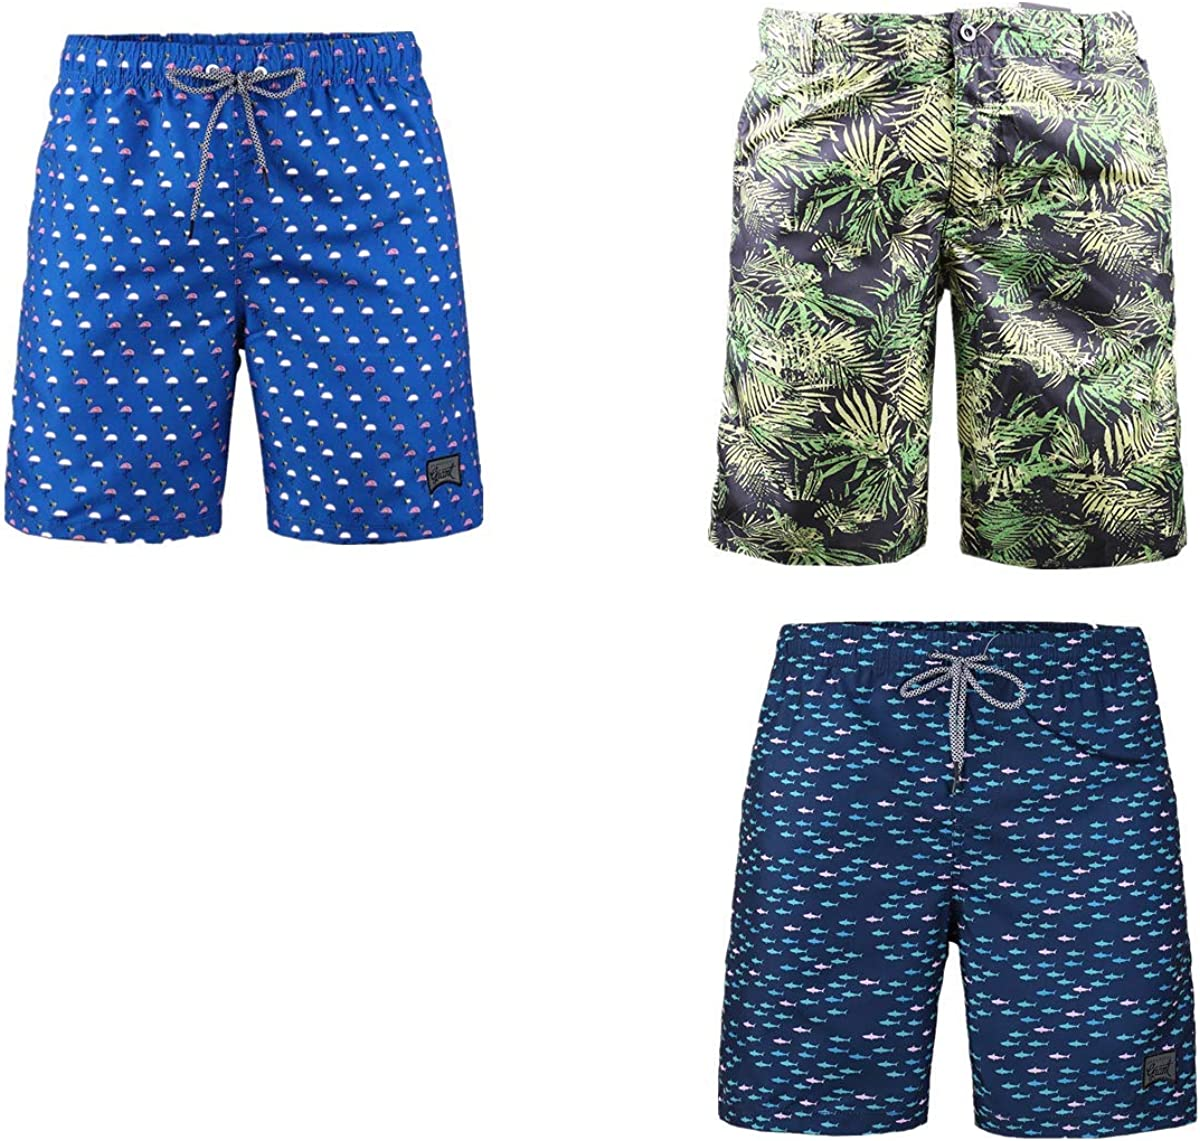 Beautiful Selling and selling Max 53% OFF Giant 3-Pack Men's Board Casual Shorts with Pockets Ha